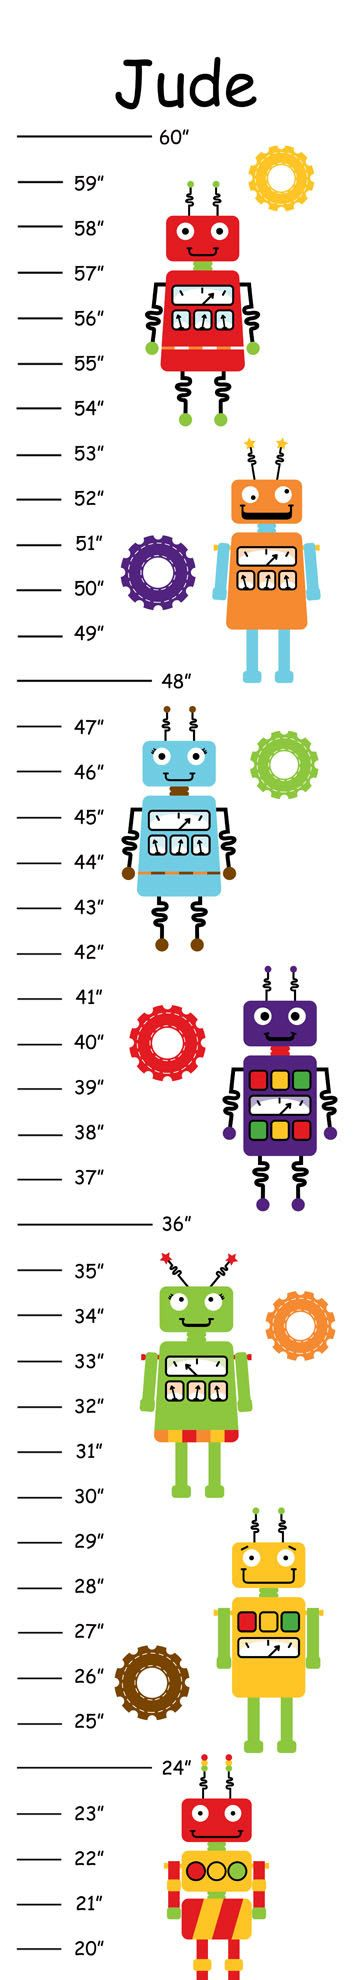 Personalized Robot Canvas Growth Chart by 123growwithme on Etsy, $20.00